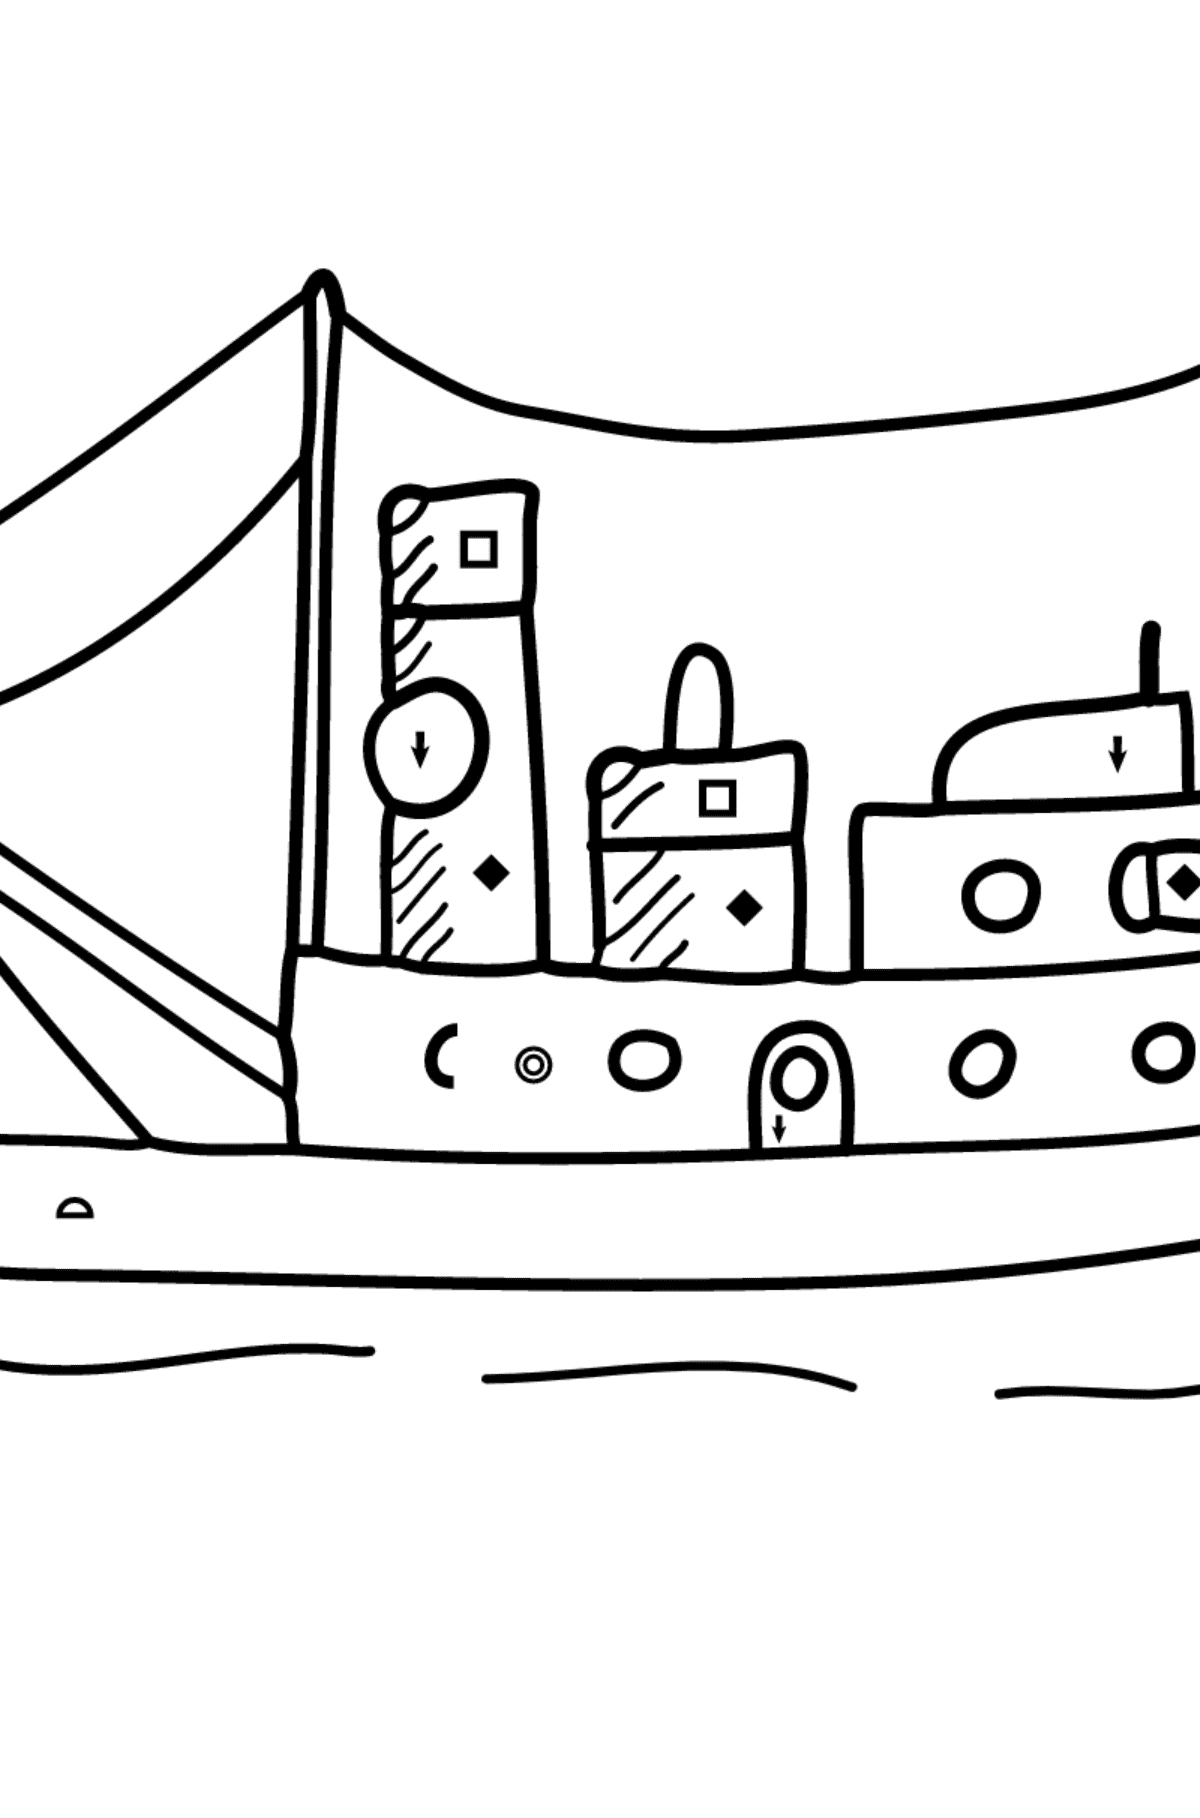 Coloring Page - A Cargo Ship - Coloring by Symbols and Geometric Shapes for Kids